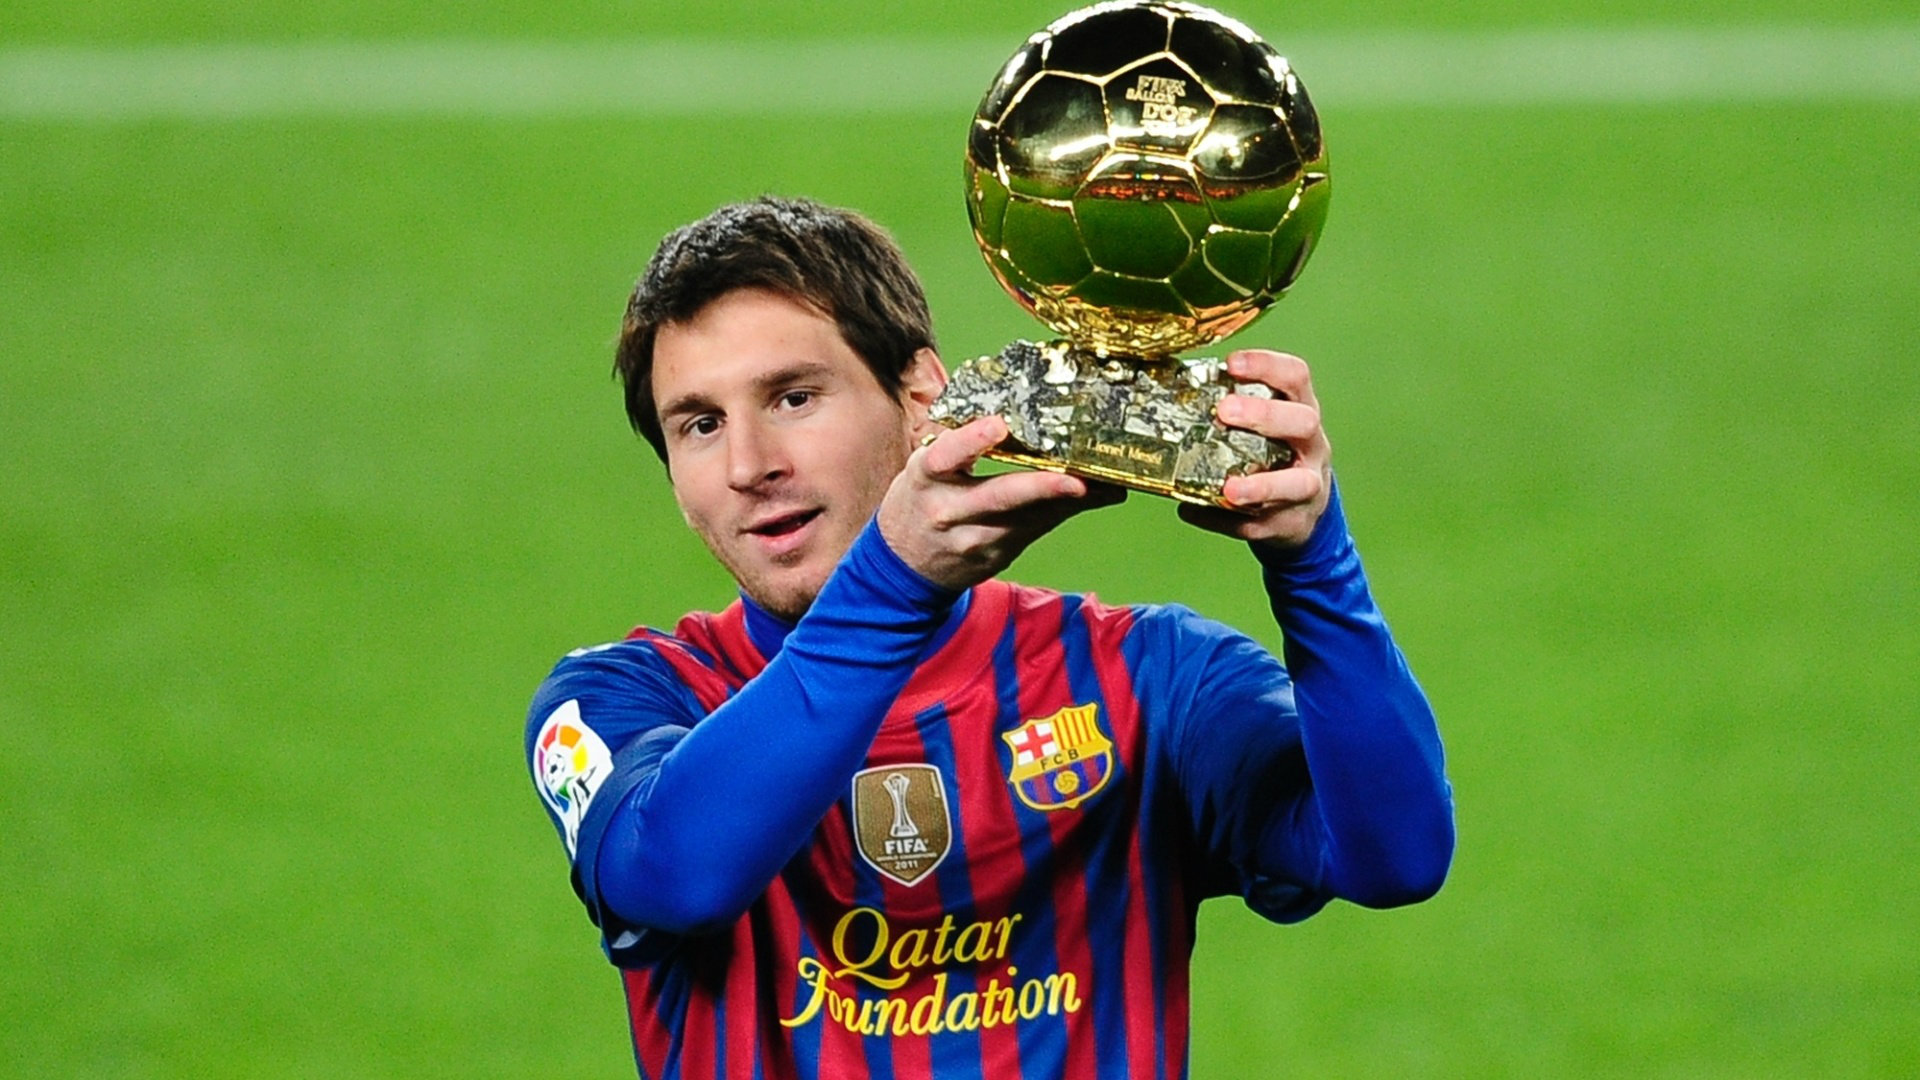 Lionel Messi HD wallpaper for download